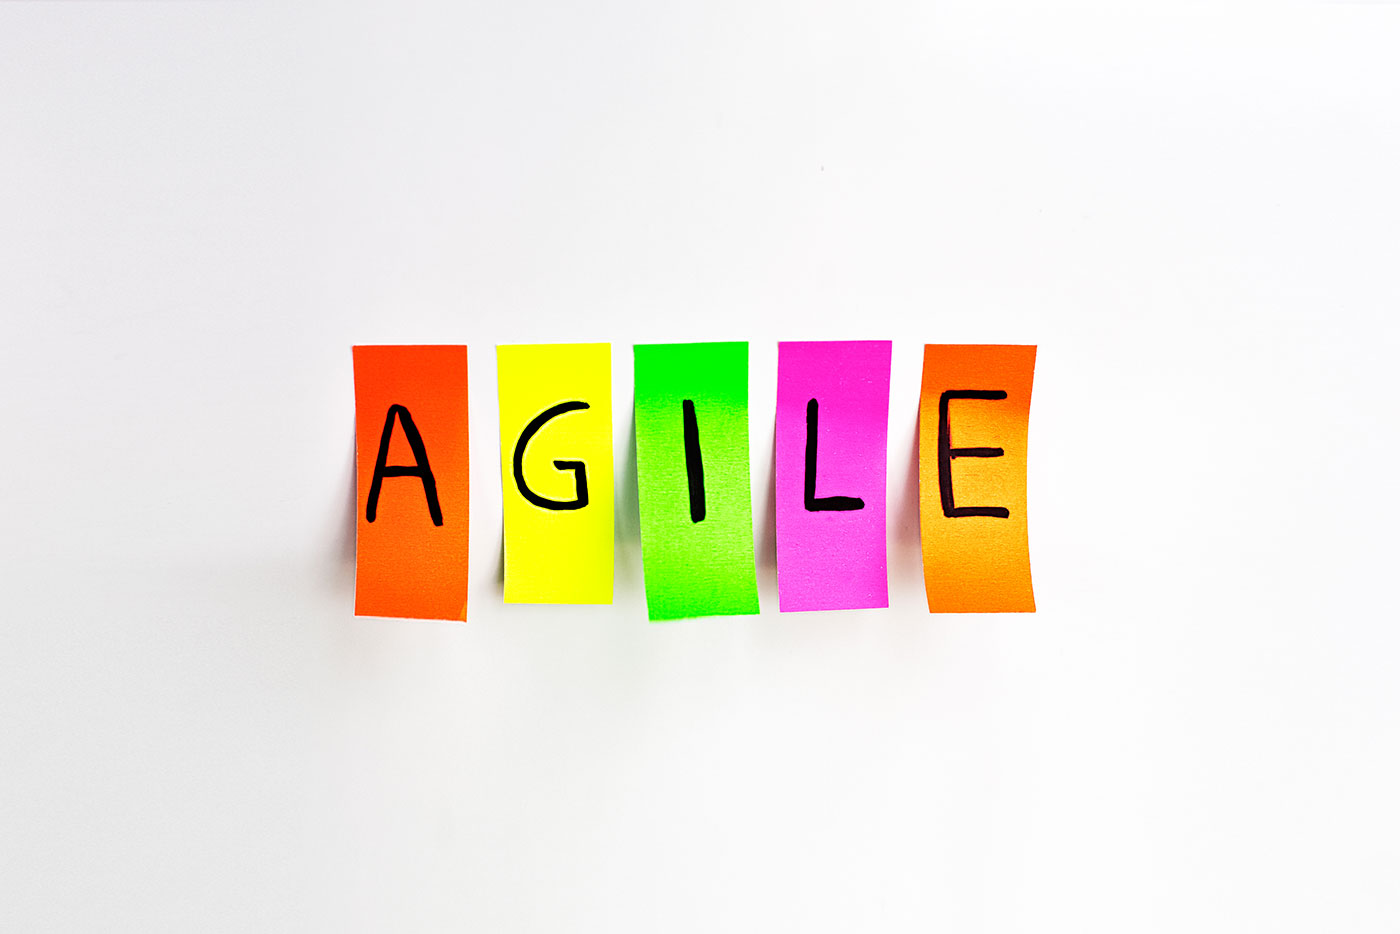 Agile is a state of mind as well as a state of business.